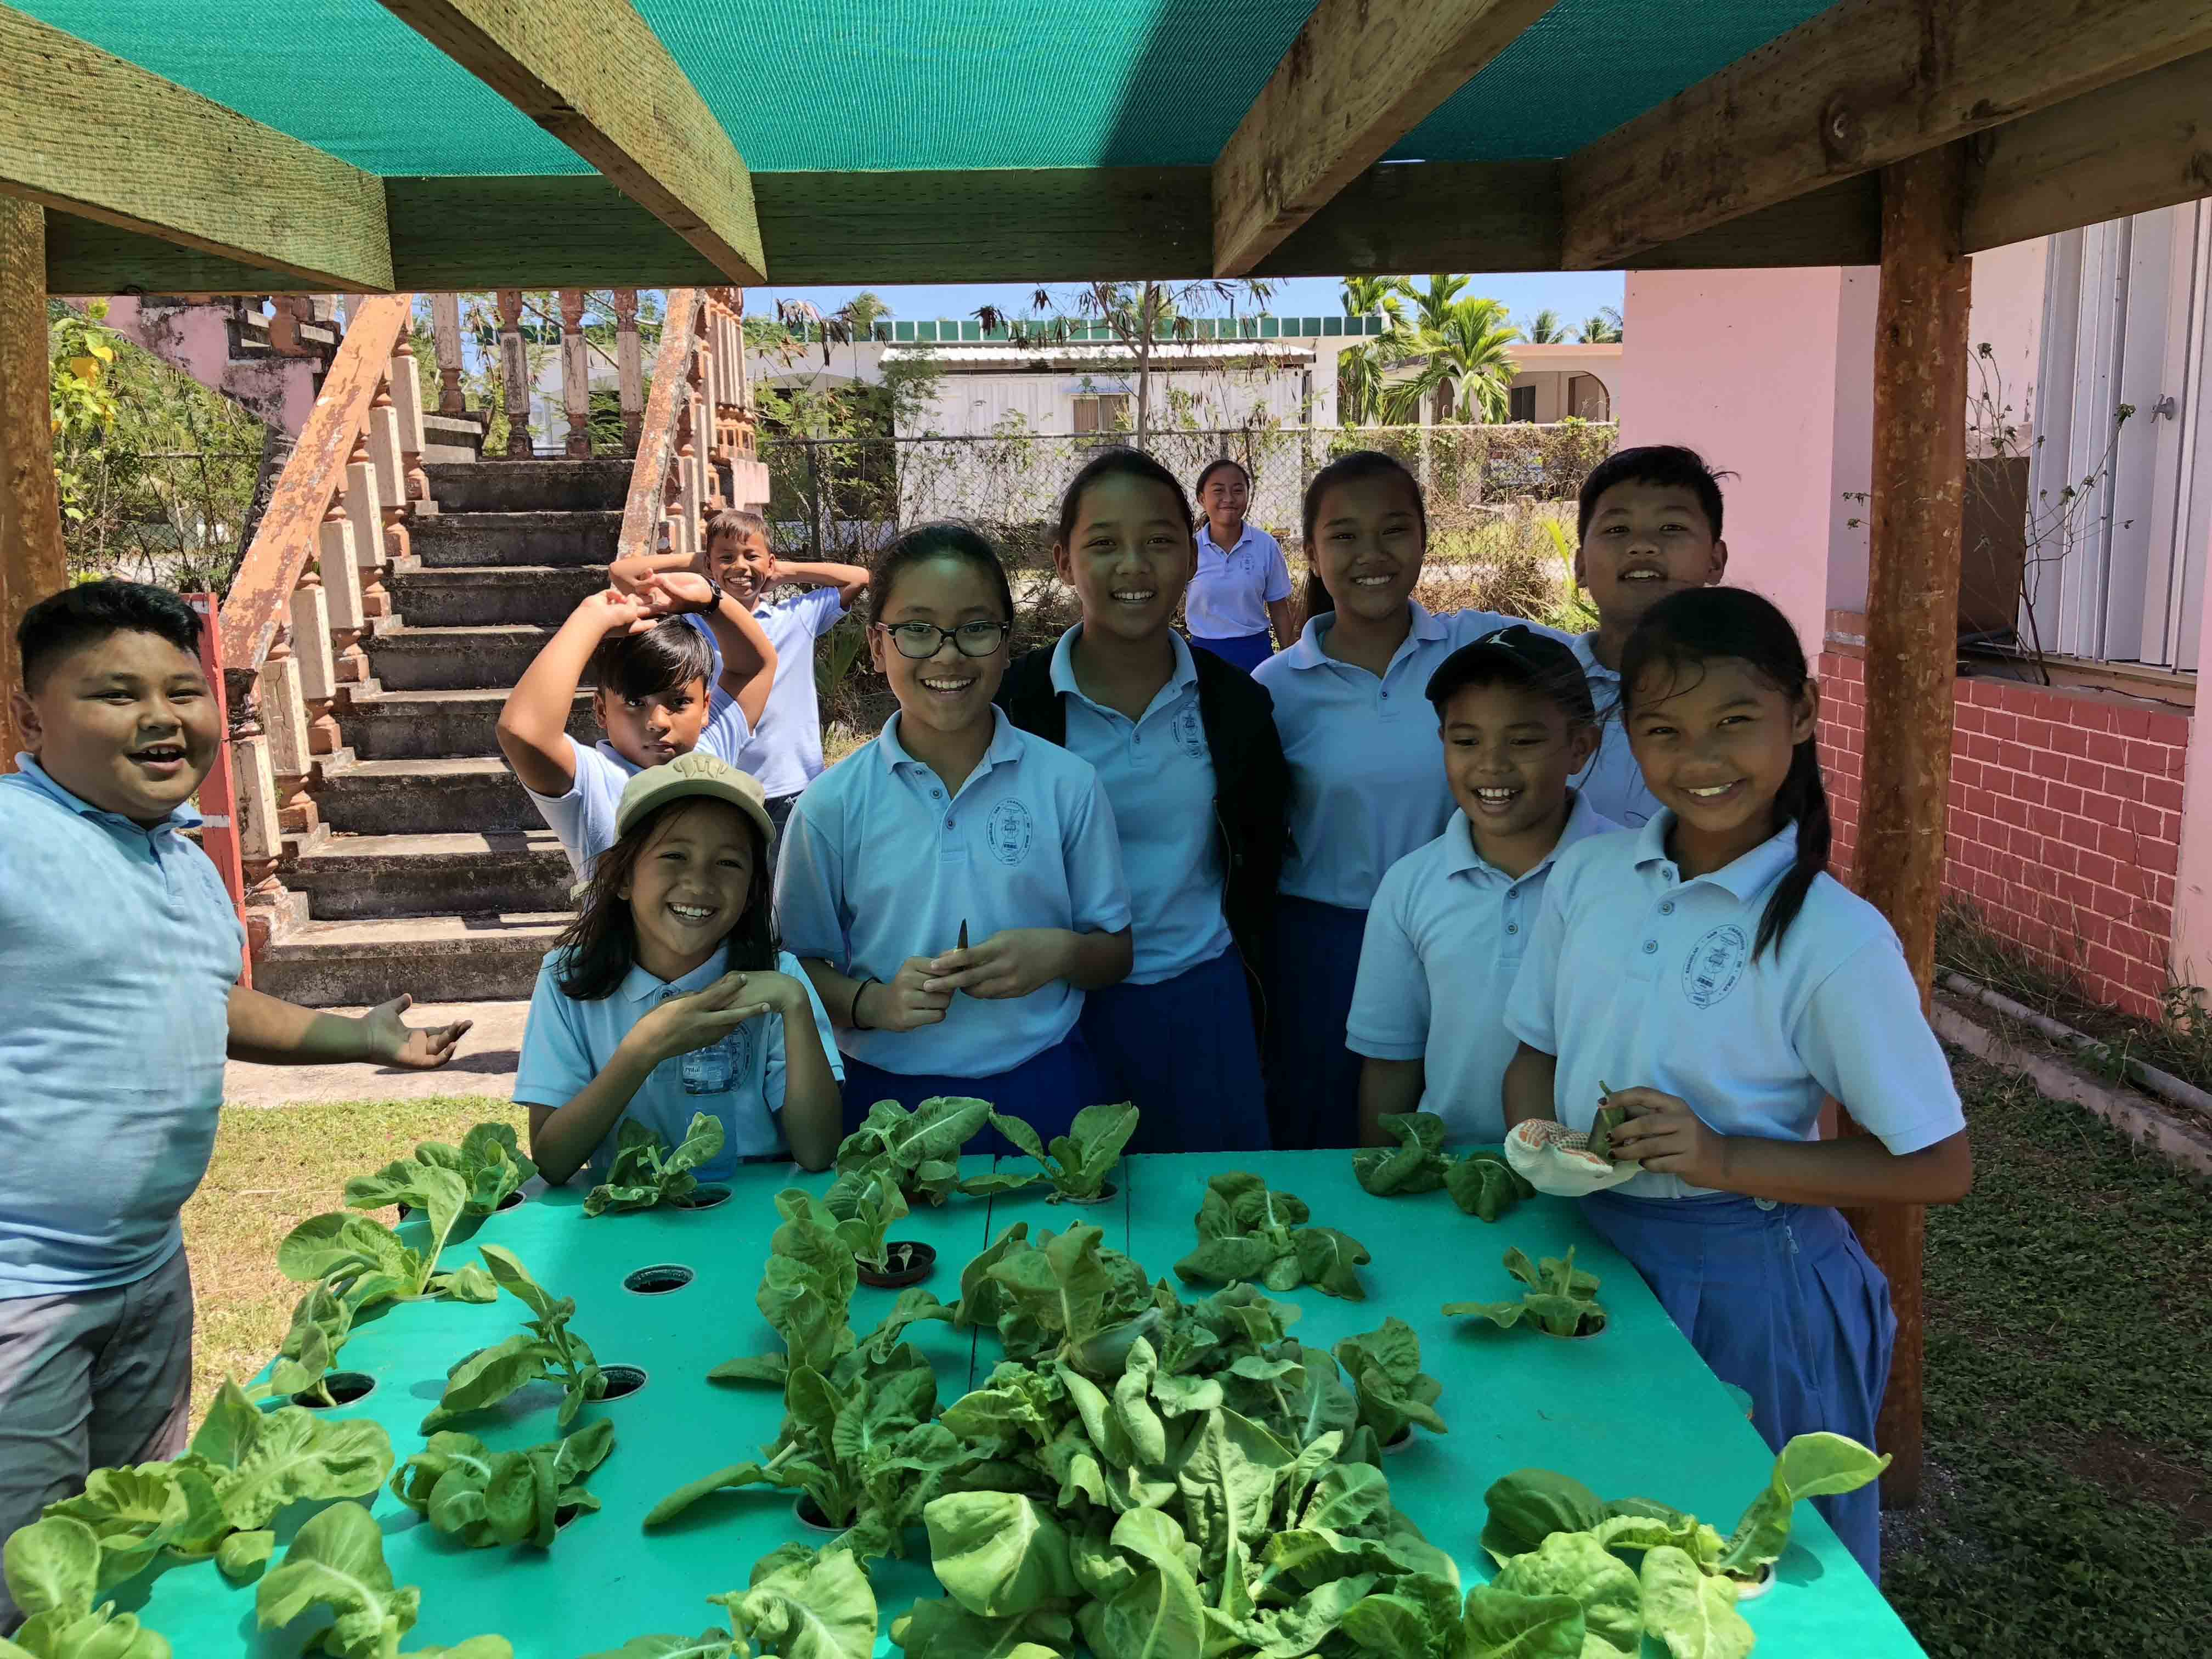 Marianas Variety: Agri Fair to hold STEM research and development contest for students